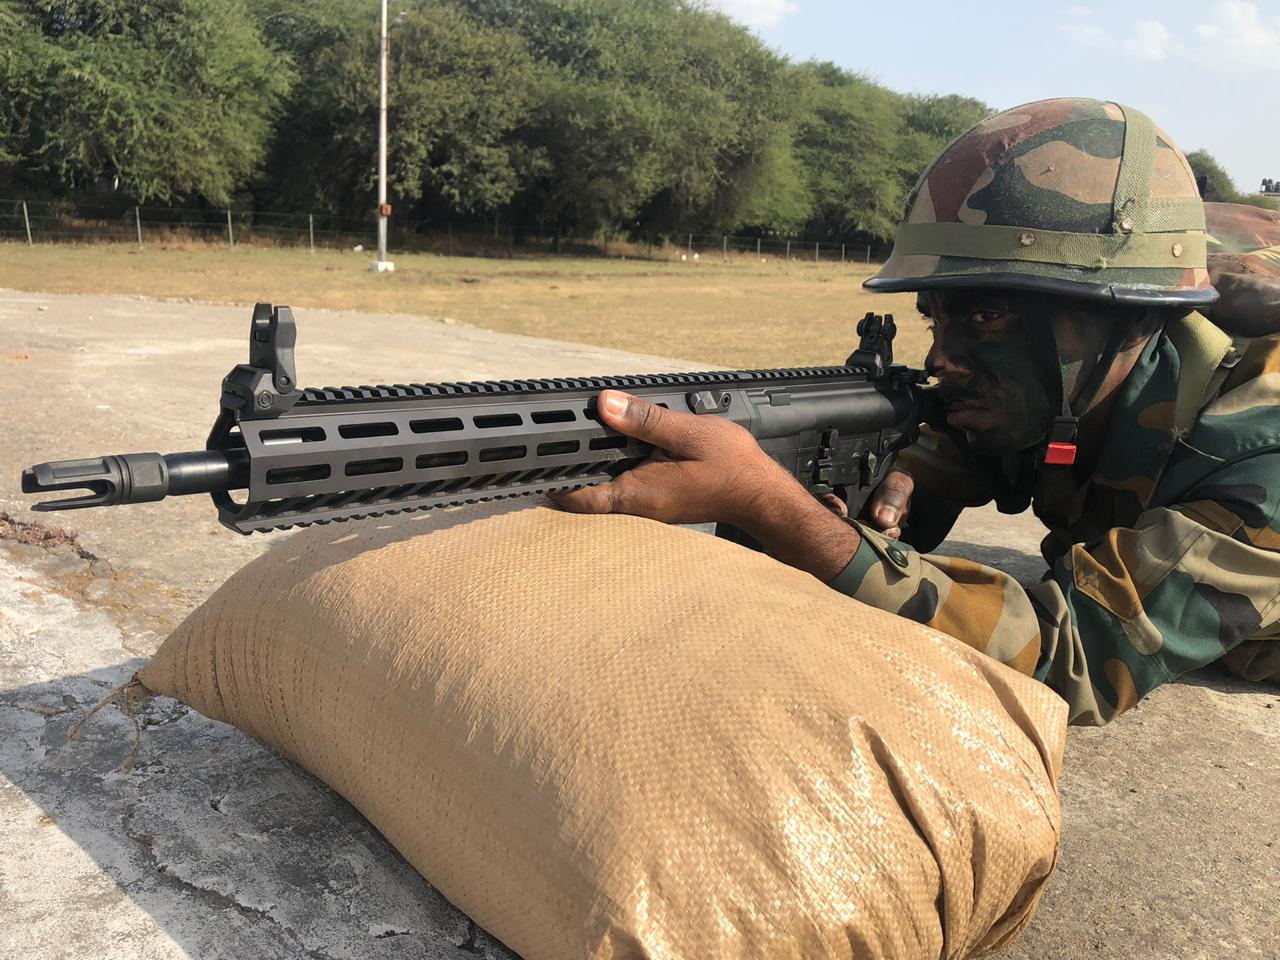 SIG-716 assault rifle of Indian army purchased from USA